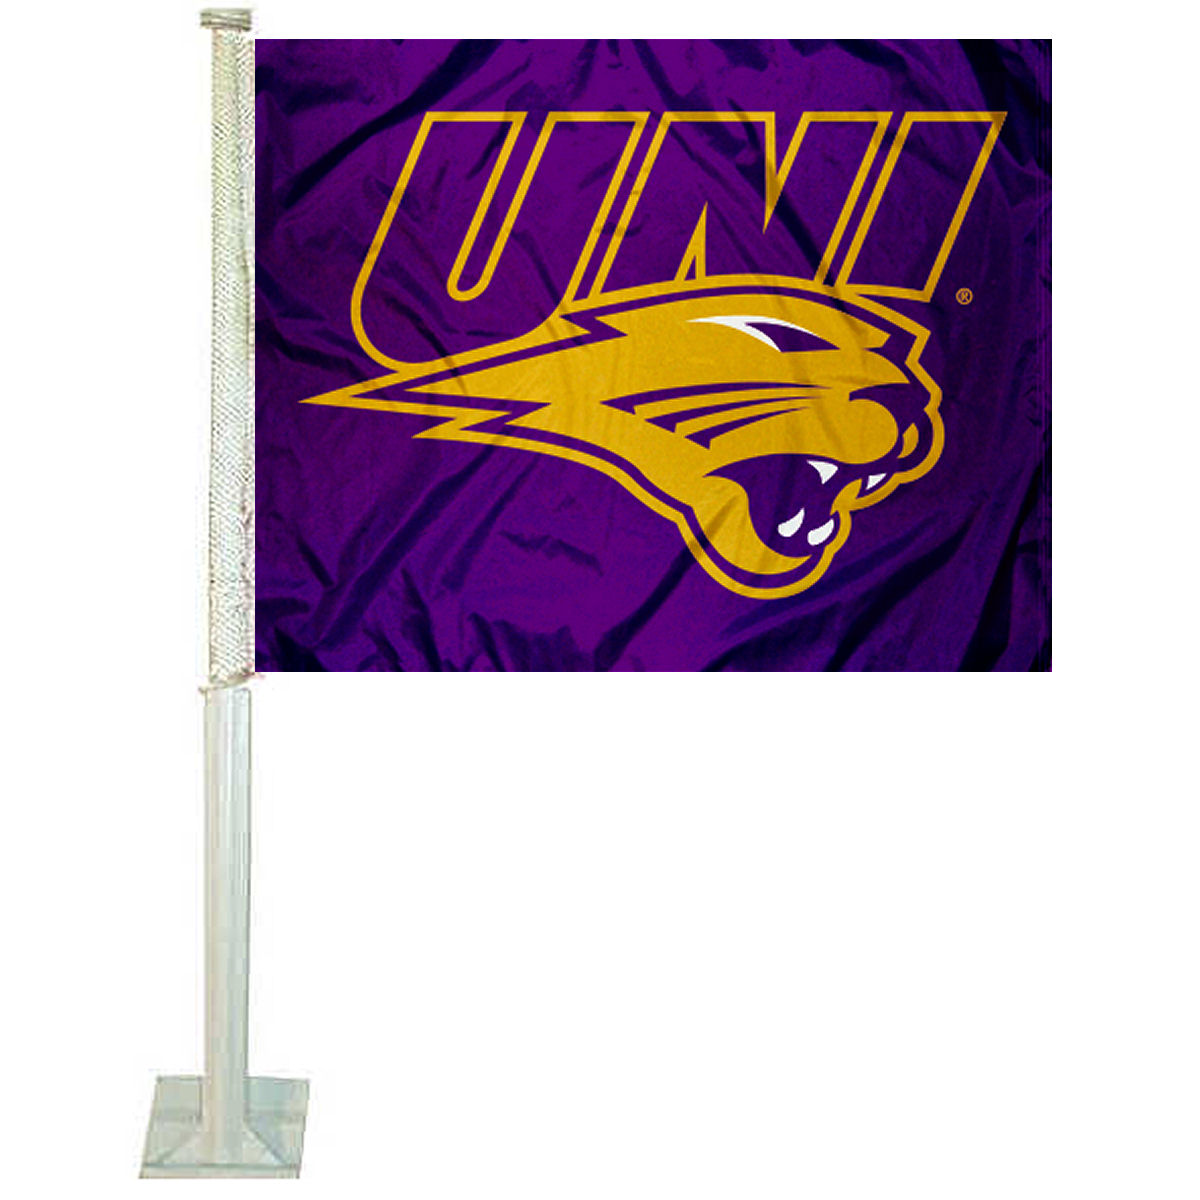 "University of Northern Iowa 12"" x 15"" Car Flag"